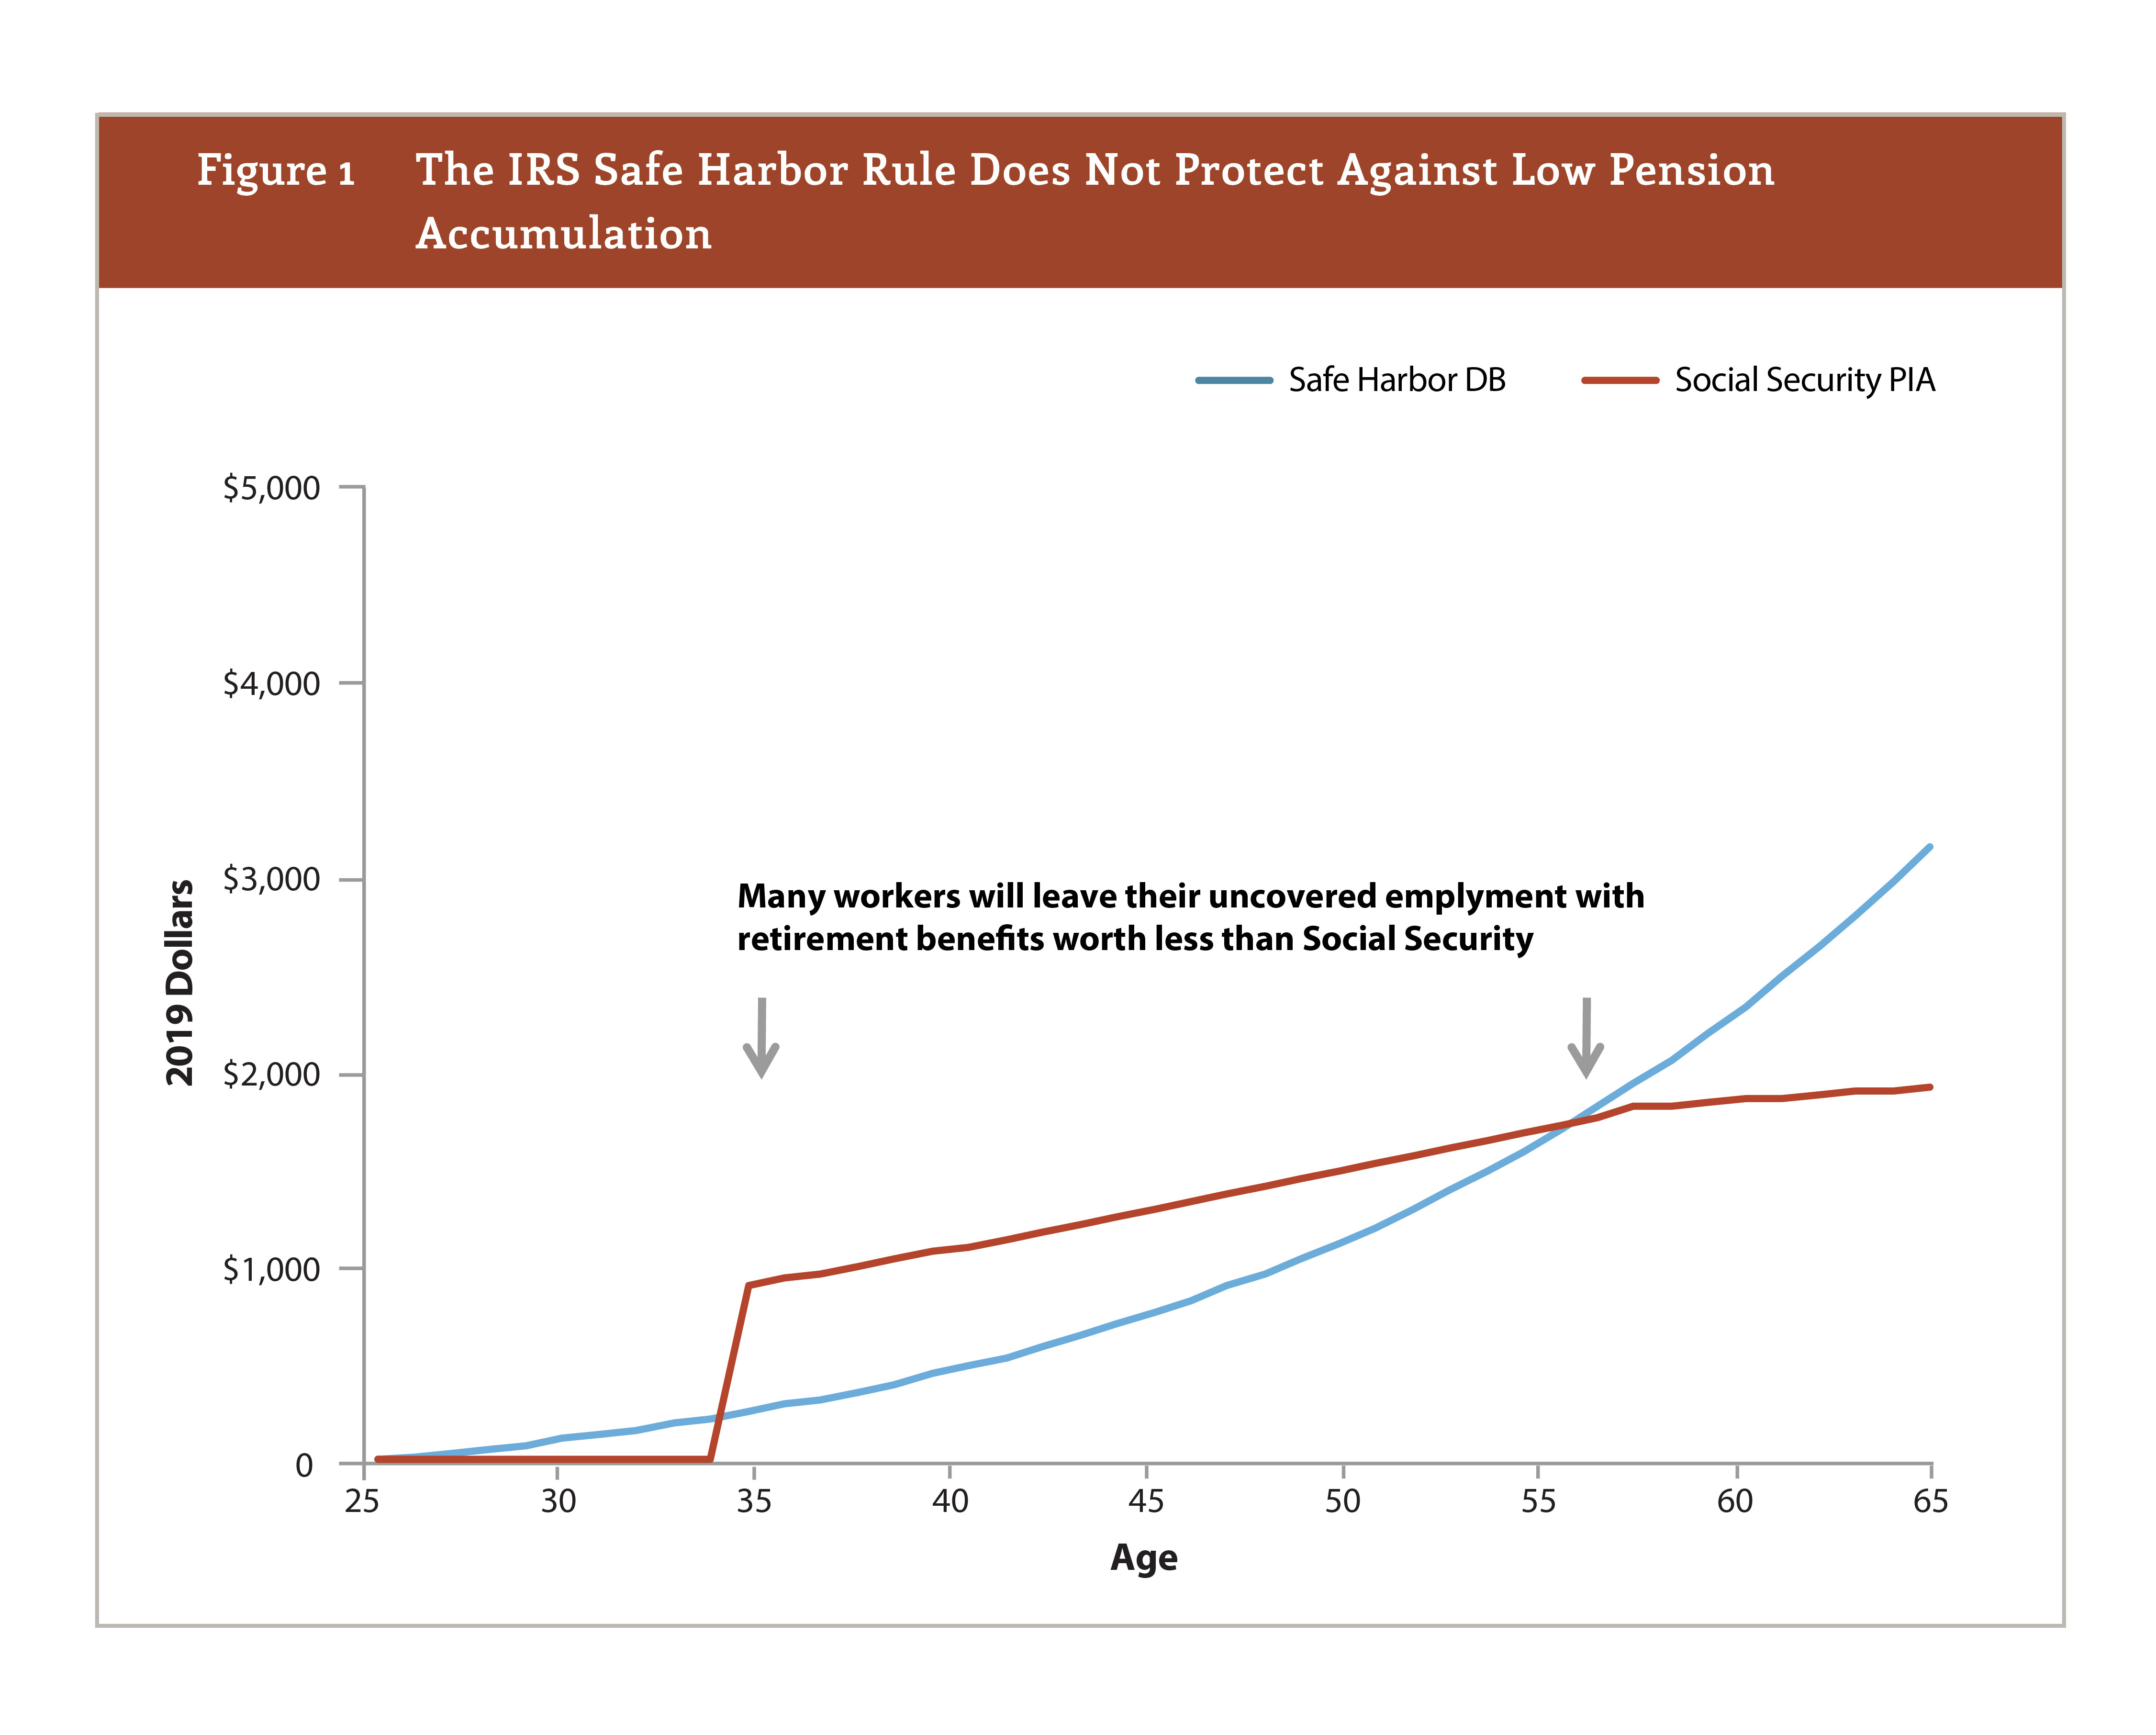 The IRS Safe Harbor Rule Does Not Protect Against Low Pension Accumulation